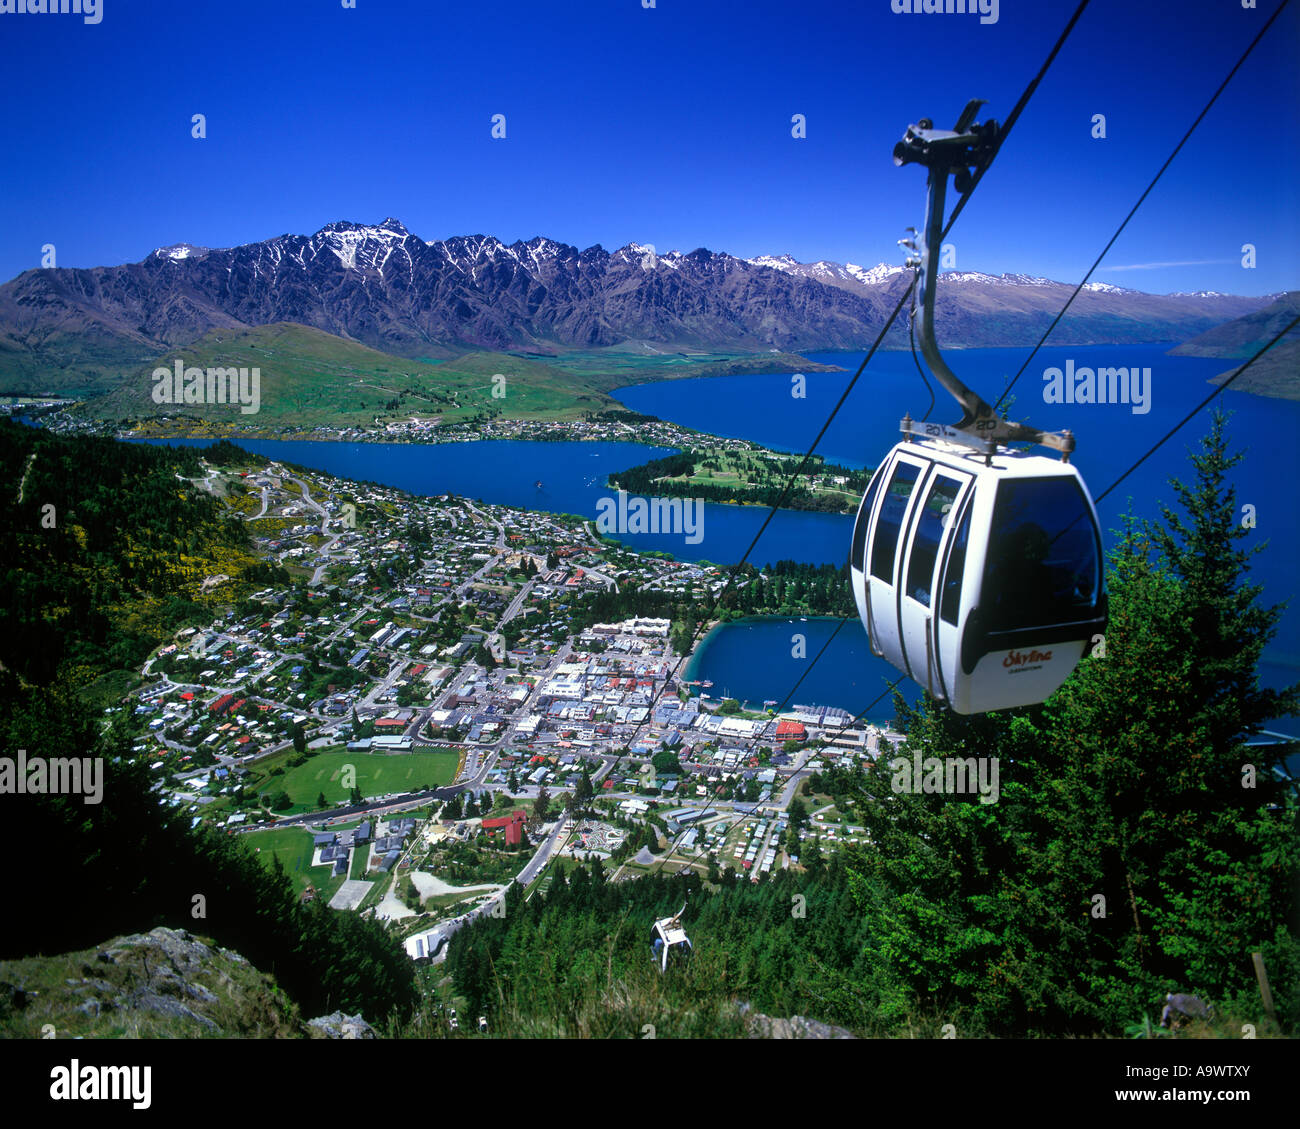 Cable Automotive Oklahoma City : Skyline gondola kabel auto lake wakatipu queenstown